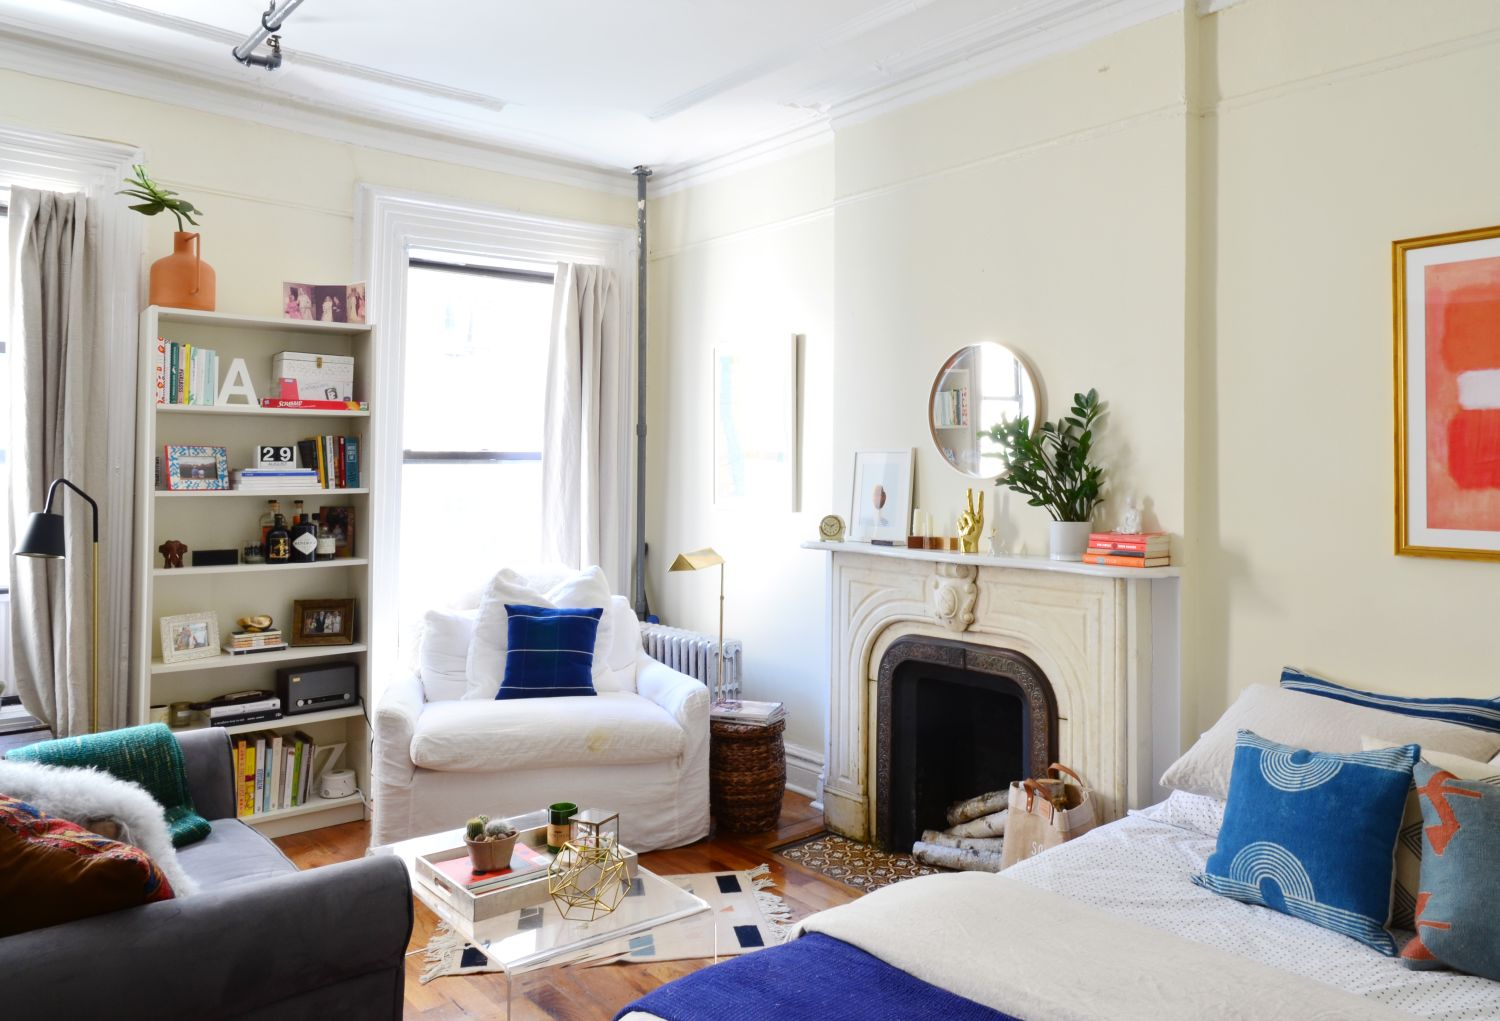 House tour a dreamy 400 square foot brooklyn studio - Looking for 1 bedroom apartment in brooklyn ...